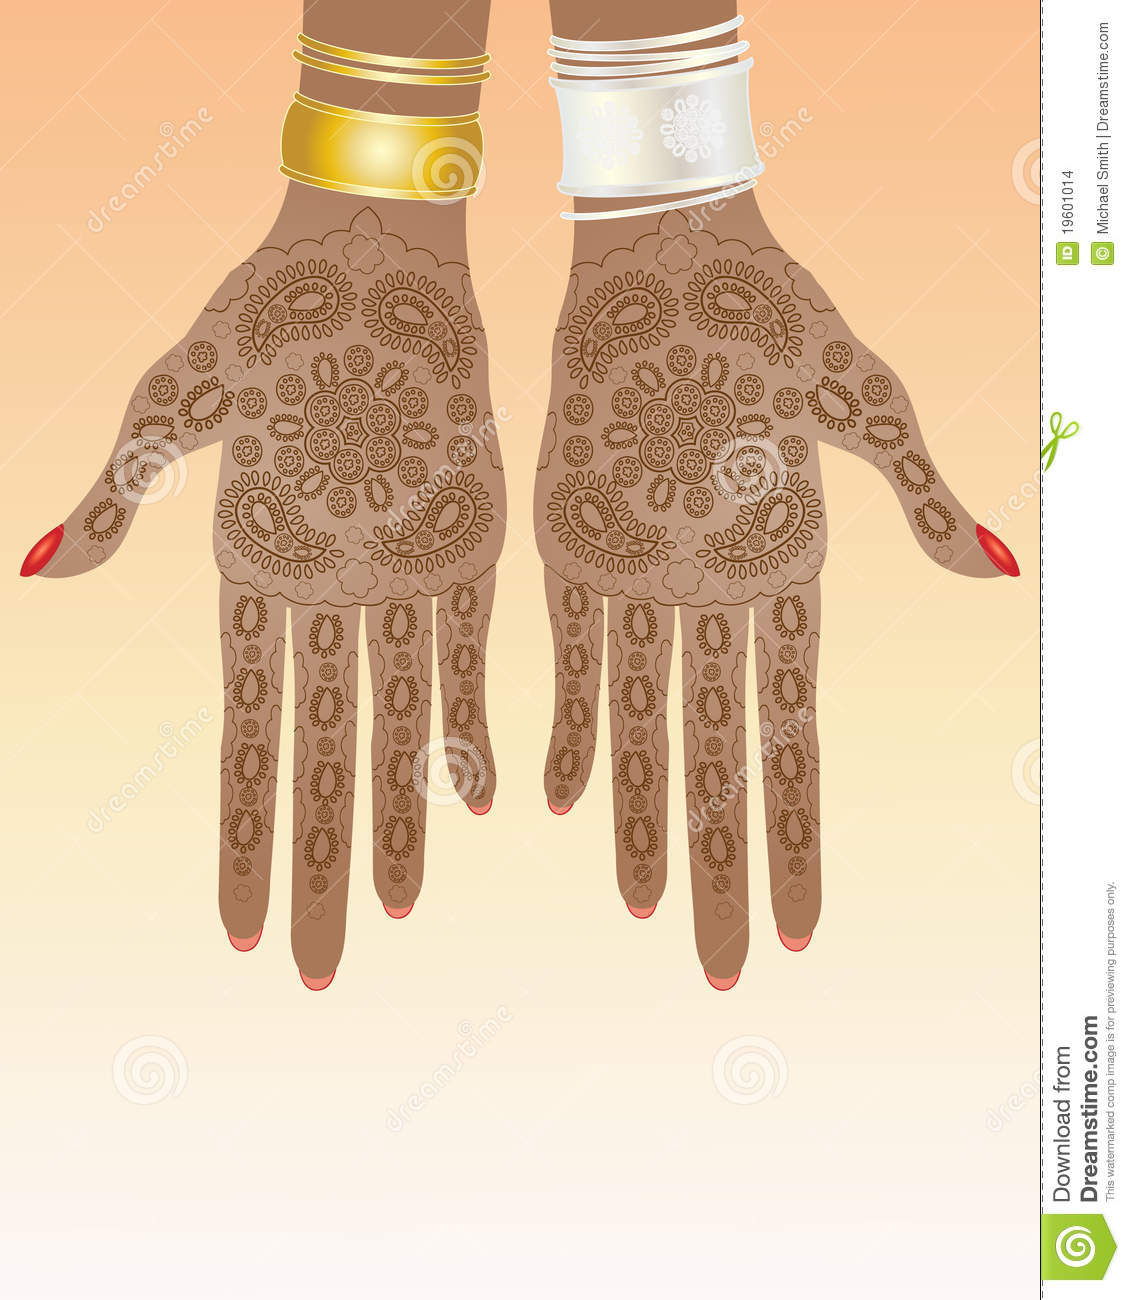 11 Silver And Gold Henna Design Images